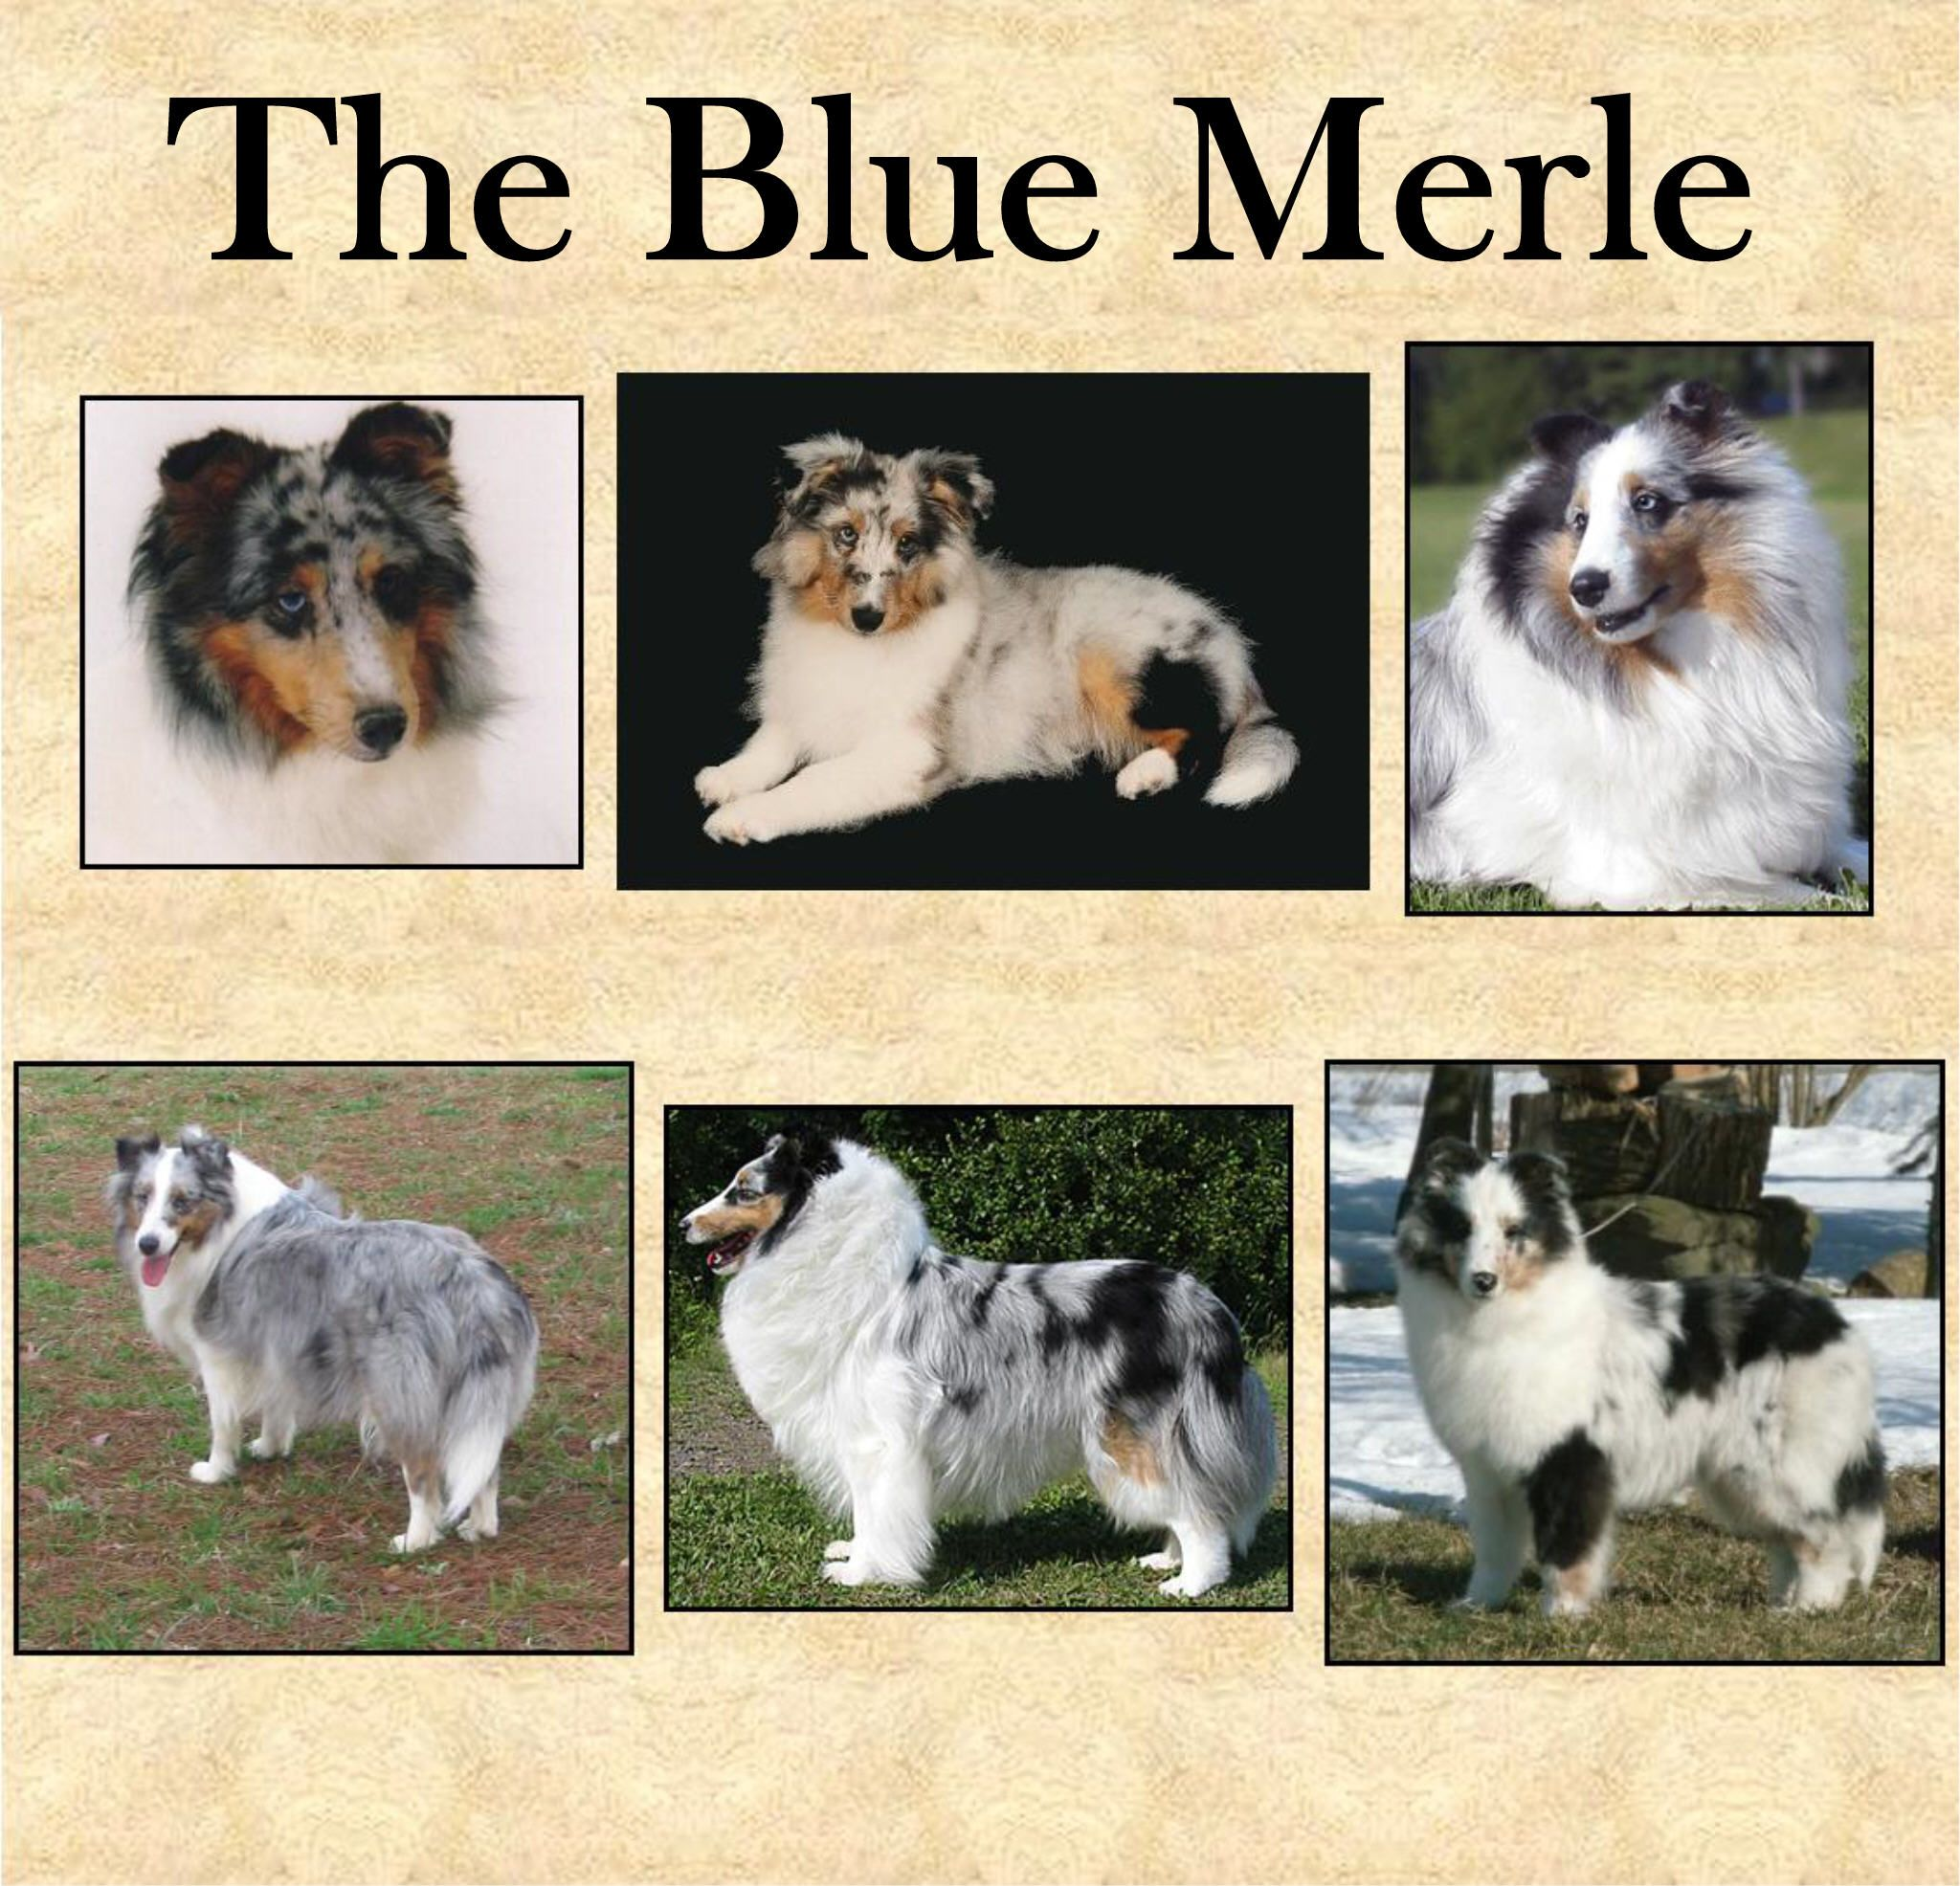 I Would Love To Get A Sheltie There Are So Many Different Color